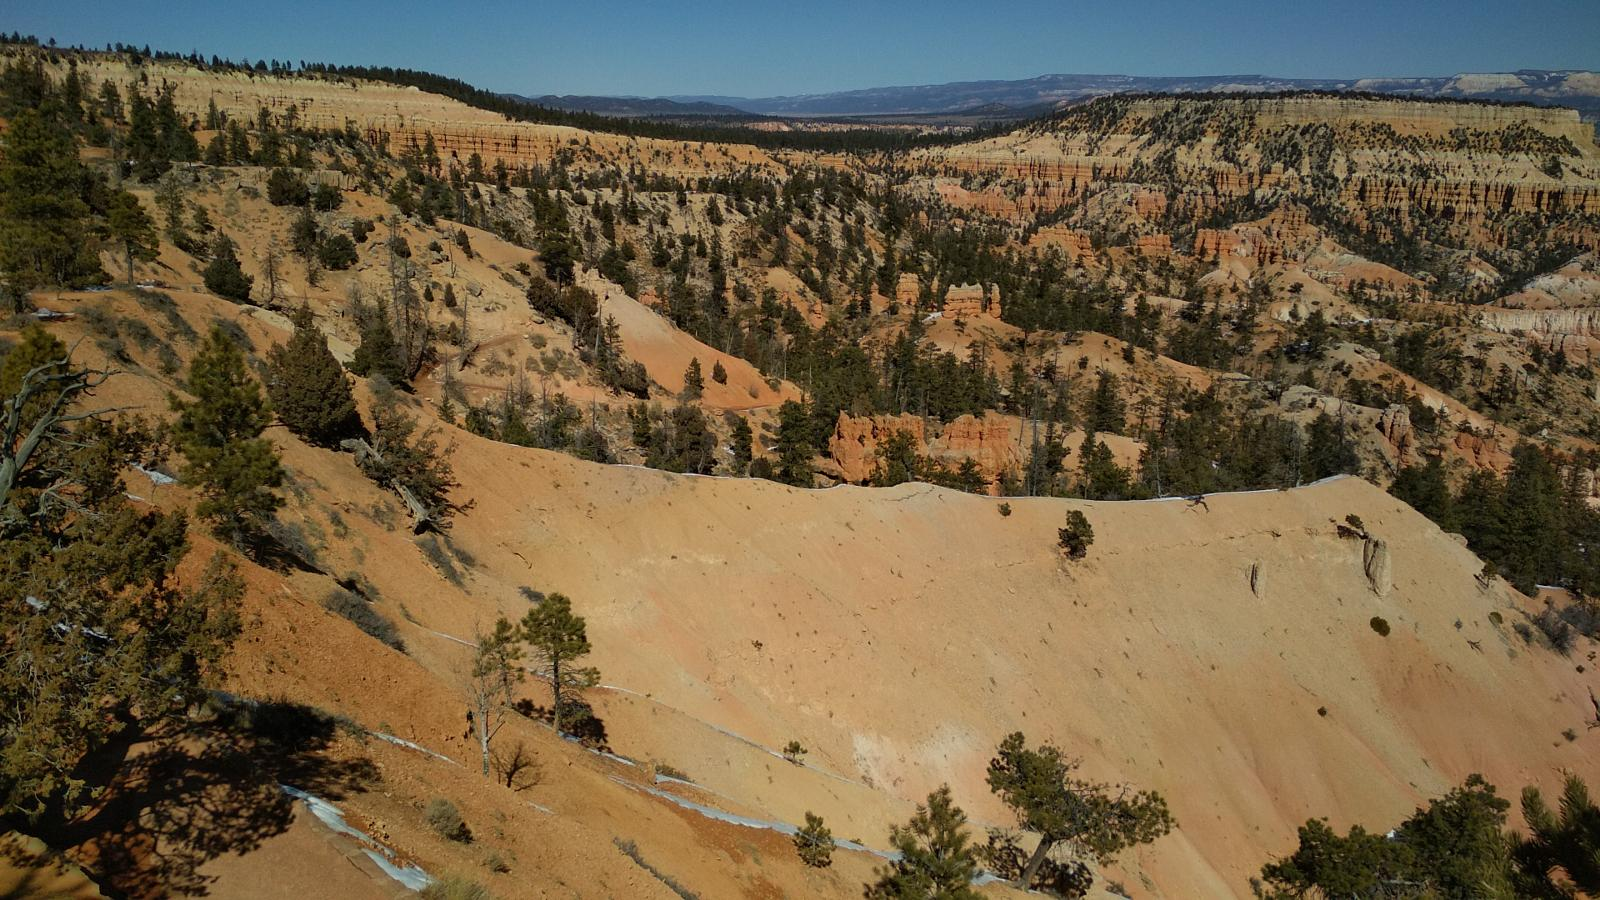 argazkia The Figure 8 Combination Trail, Bryce Canyon.